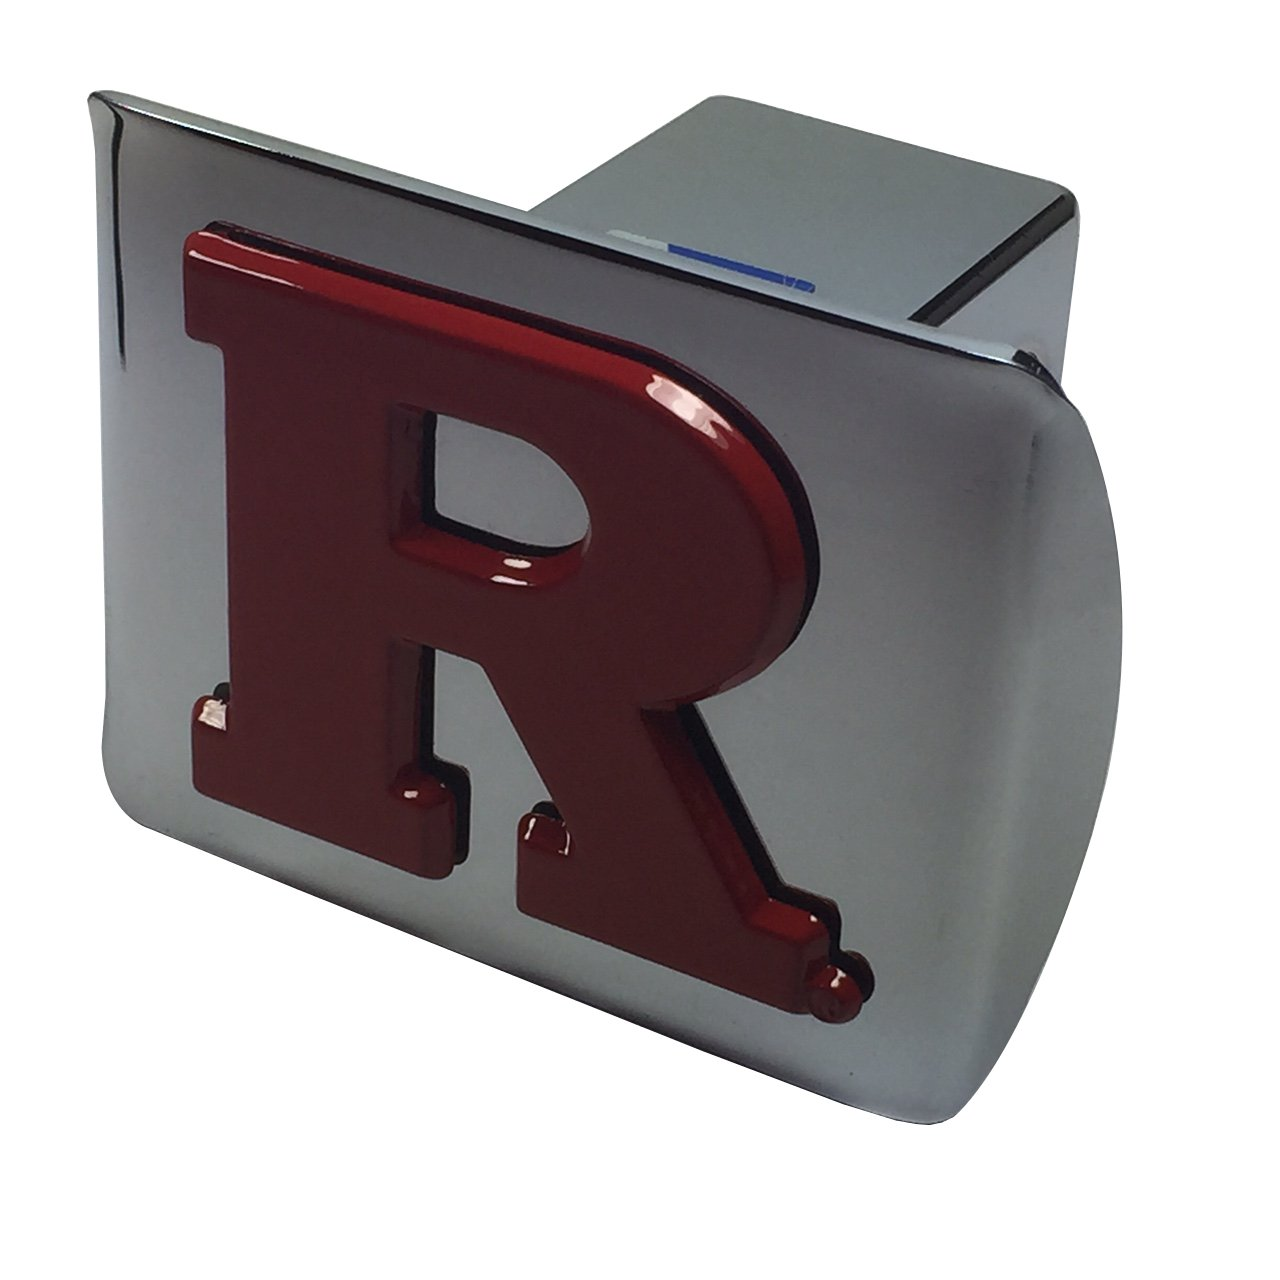 Red Rutgers METAL emblem on chrome METAL Hitch Cover AMG